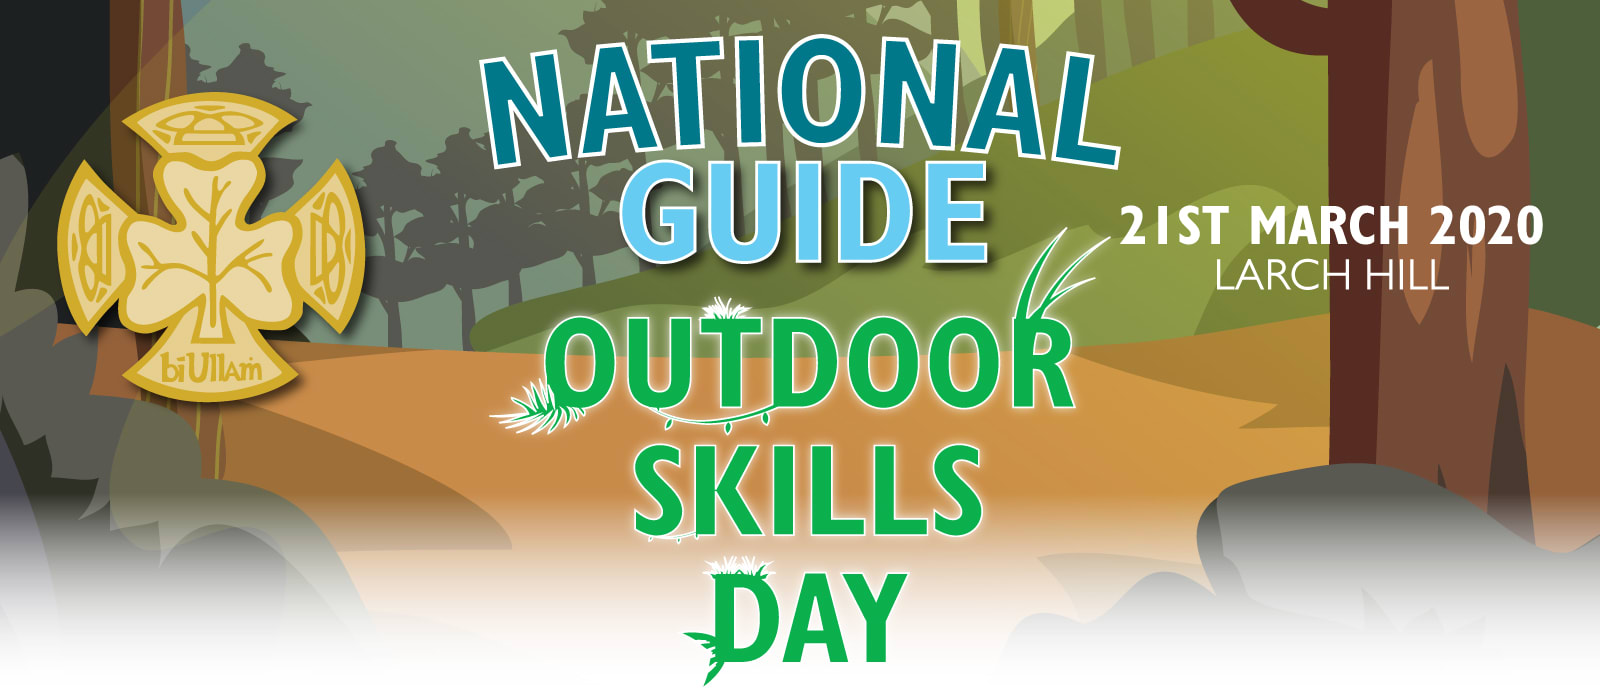 Banner image for National Guide Outdoor Skills Day 2020